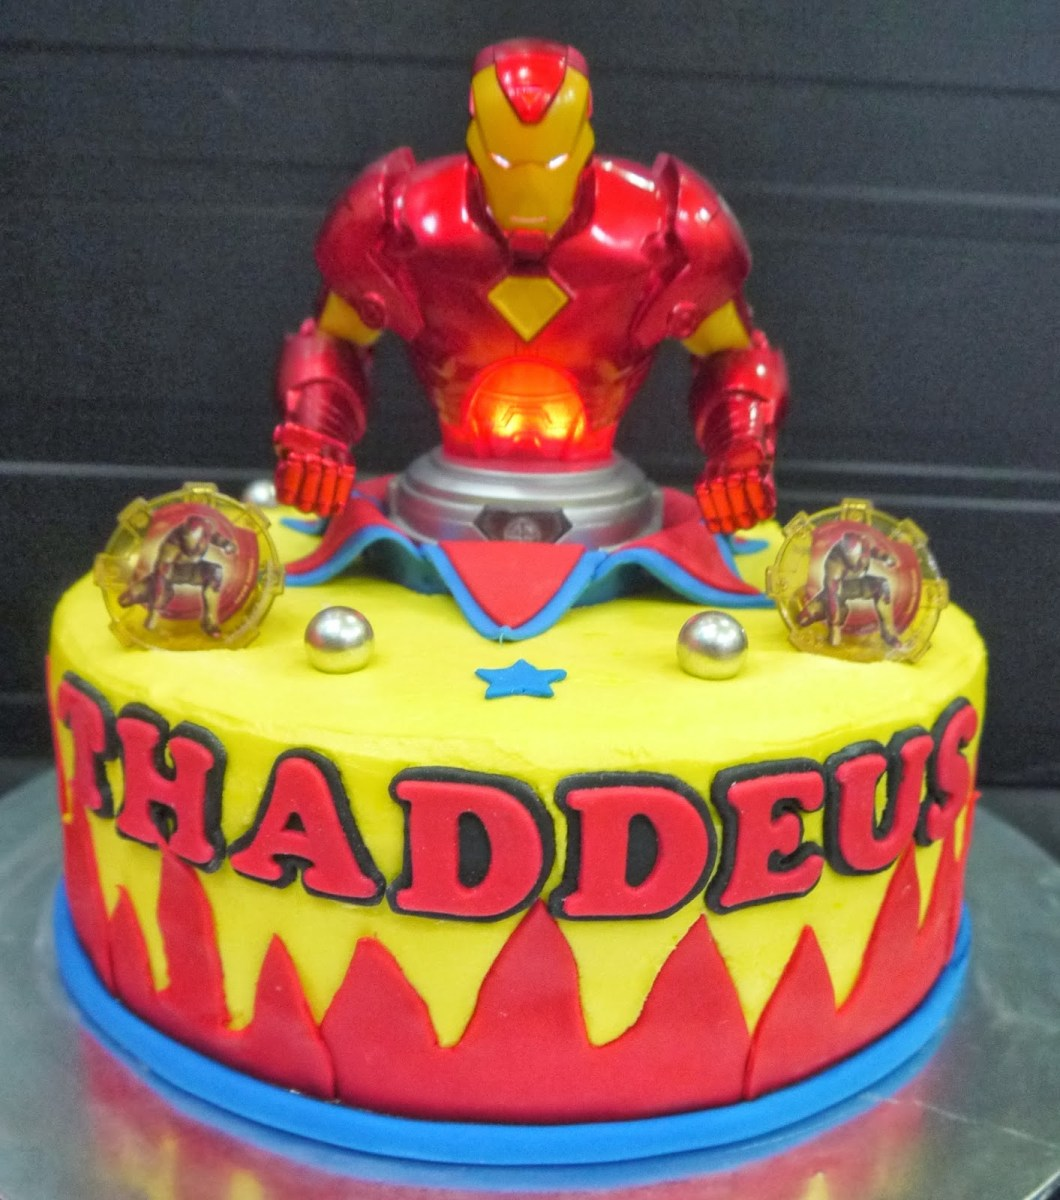 Incredible Iron Man Birthday Cake 12 Cakes With Cupcakes For Mans Photo Funny Birthday Cards Online Inifodamsfinfo